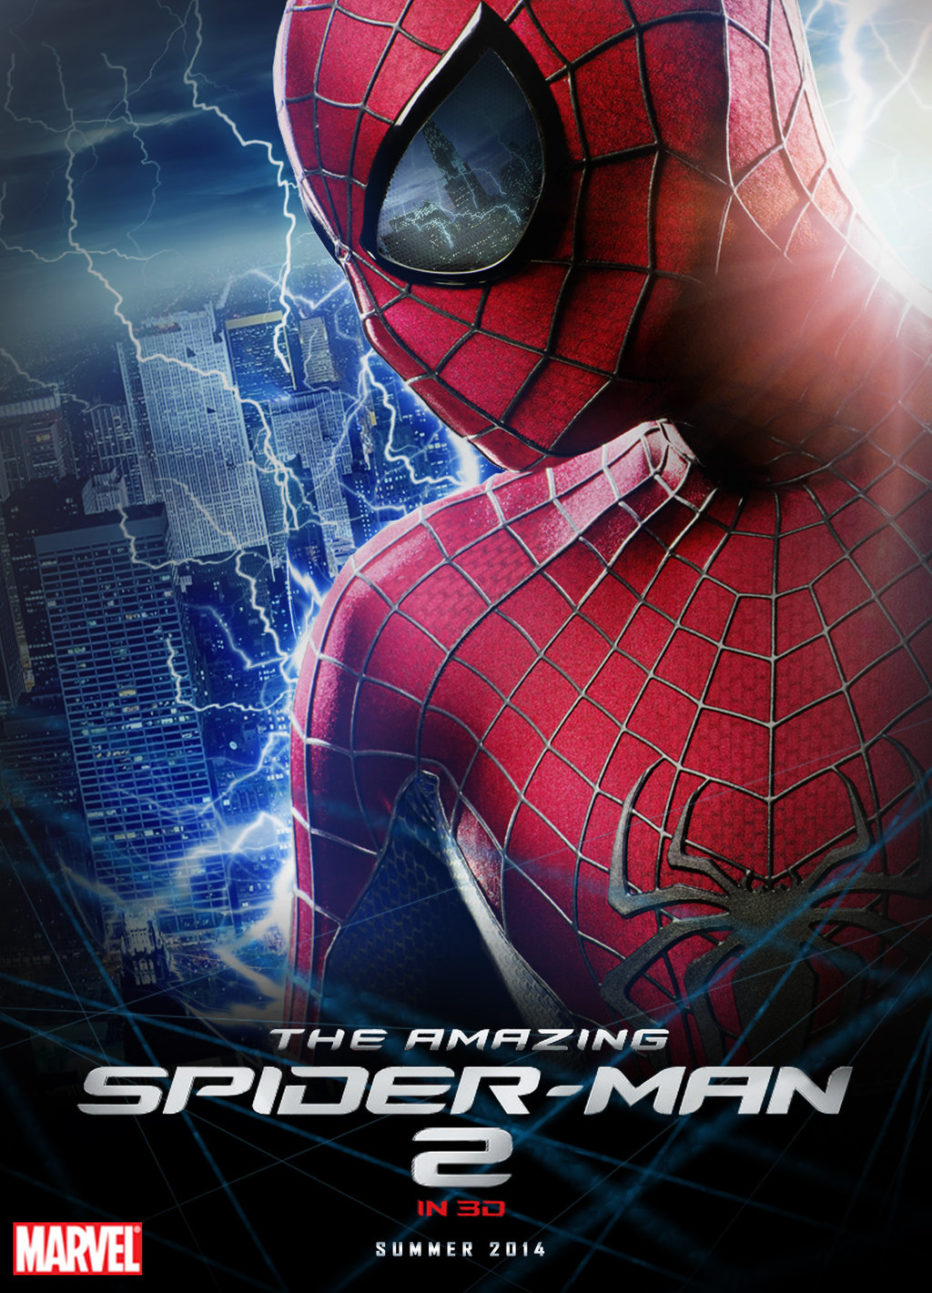 La elecrizante The Amazing Spiderman 2